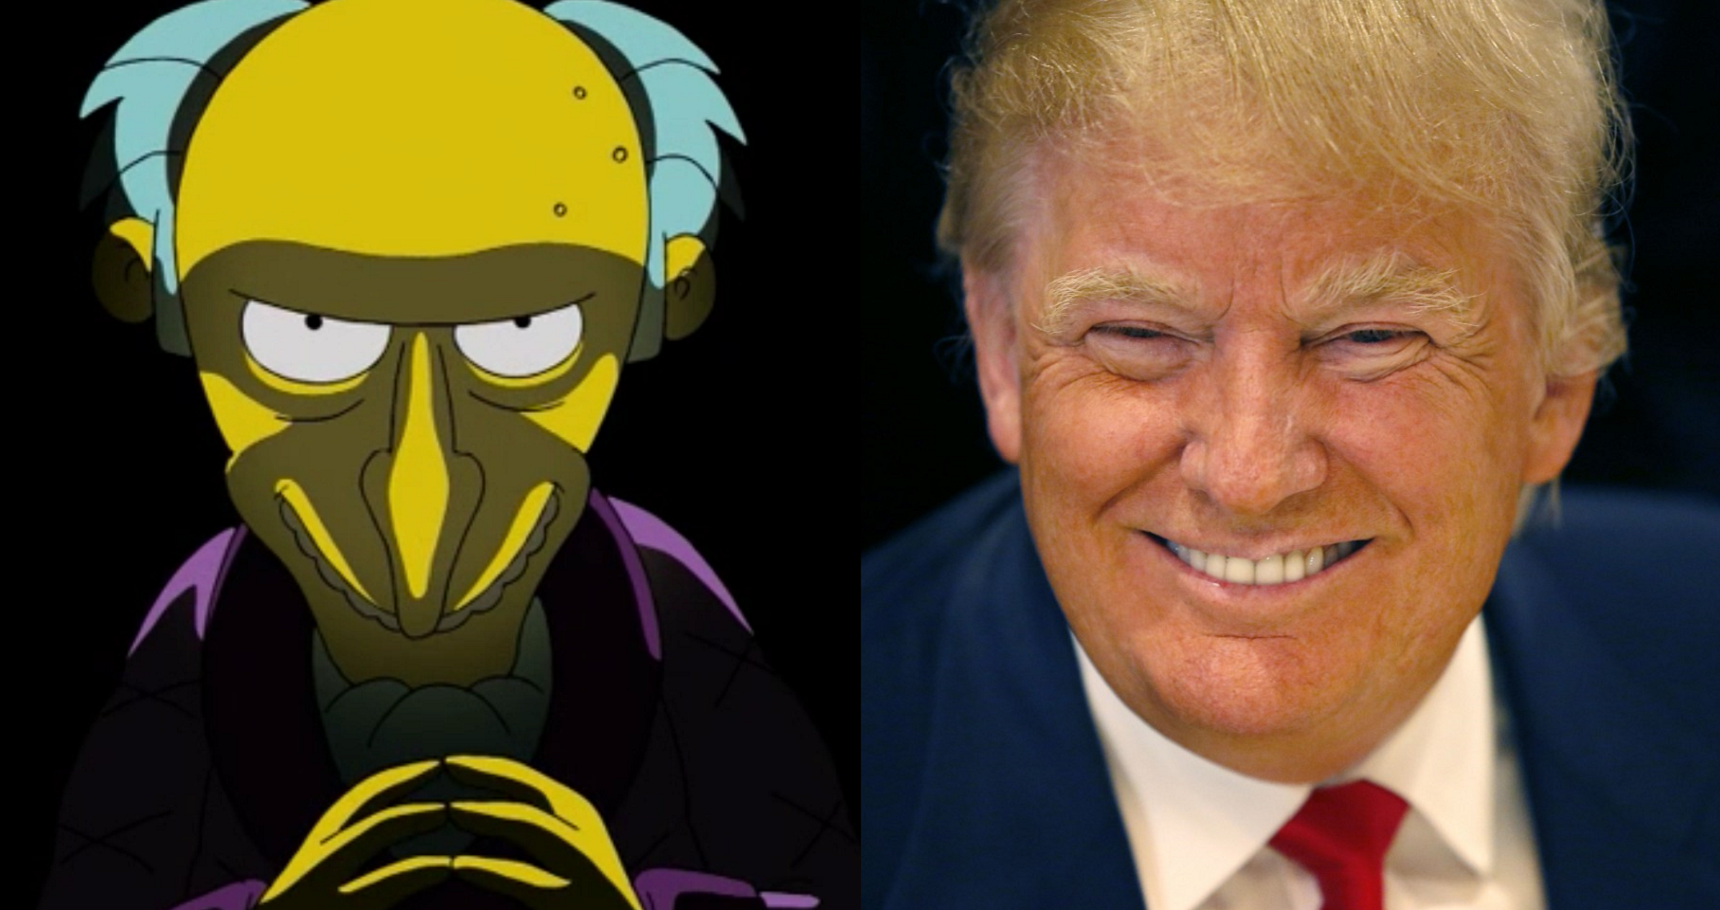 10 Characters You Didn't Know Are Based On Donald Trump